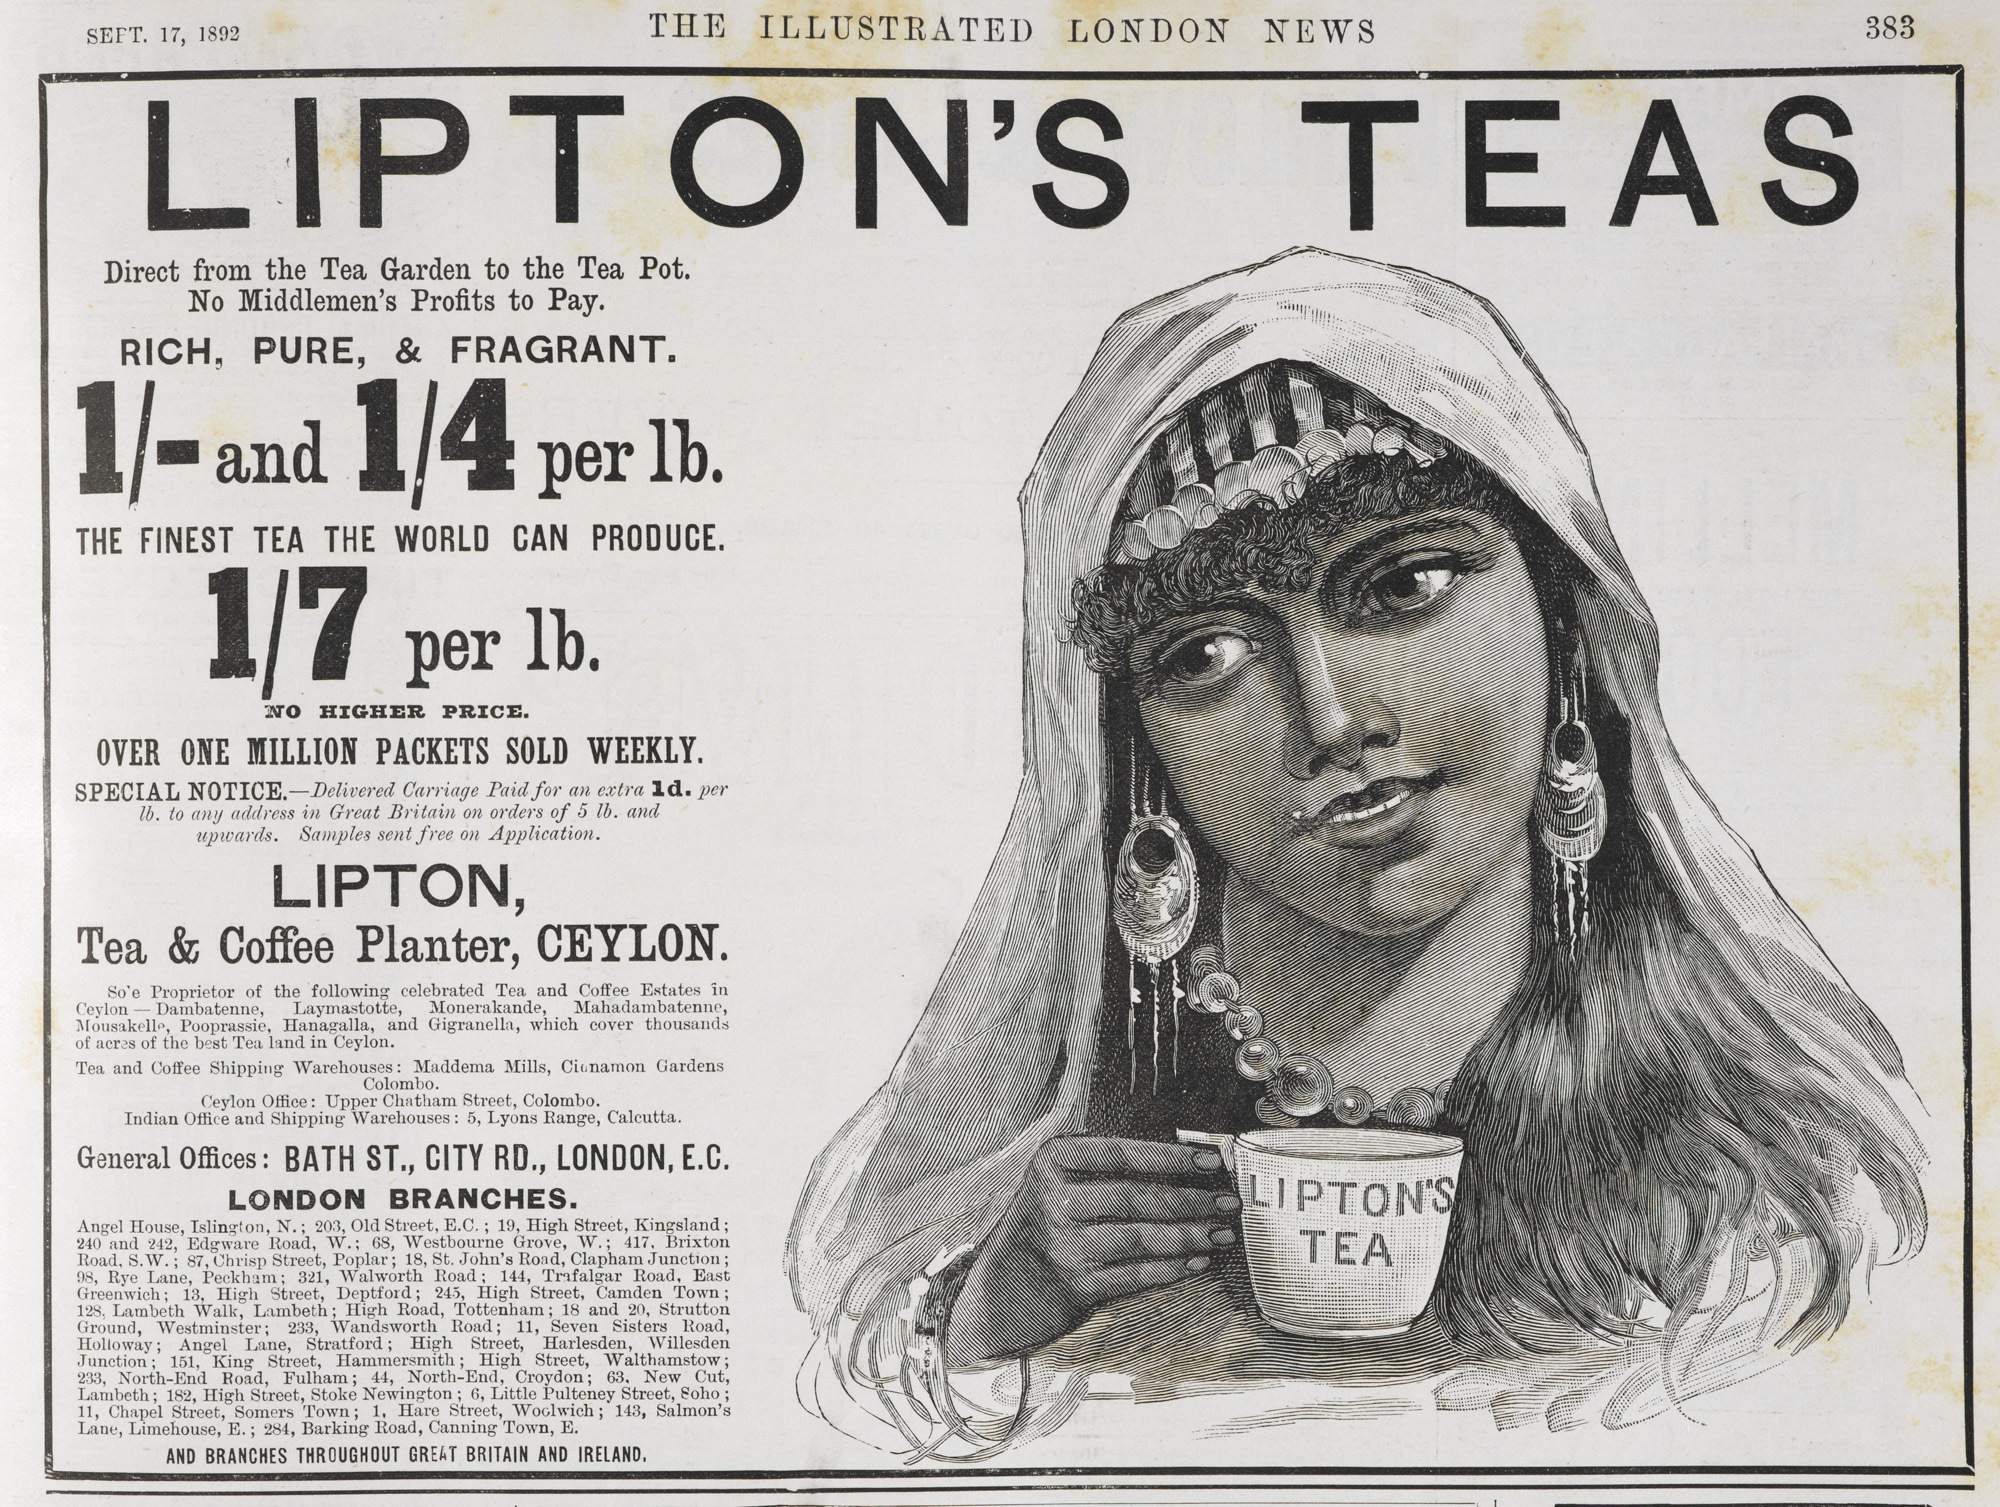 Image of a newspaper advertisement from a nineteenth-century British newspaper for Lipton Tea showing an Indian girl drinking tea with various prices for tea